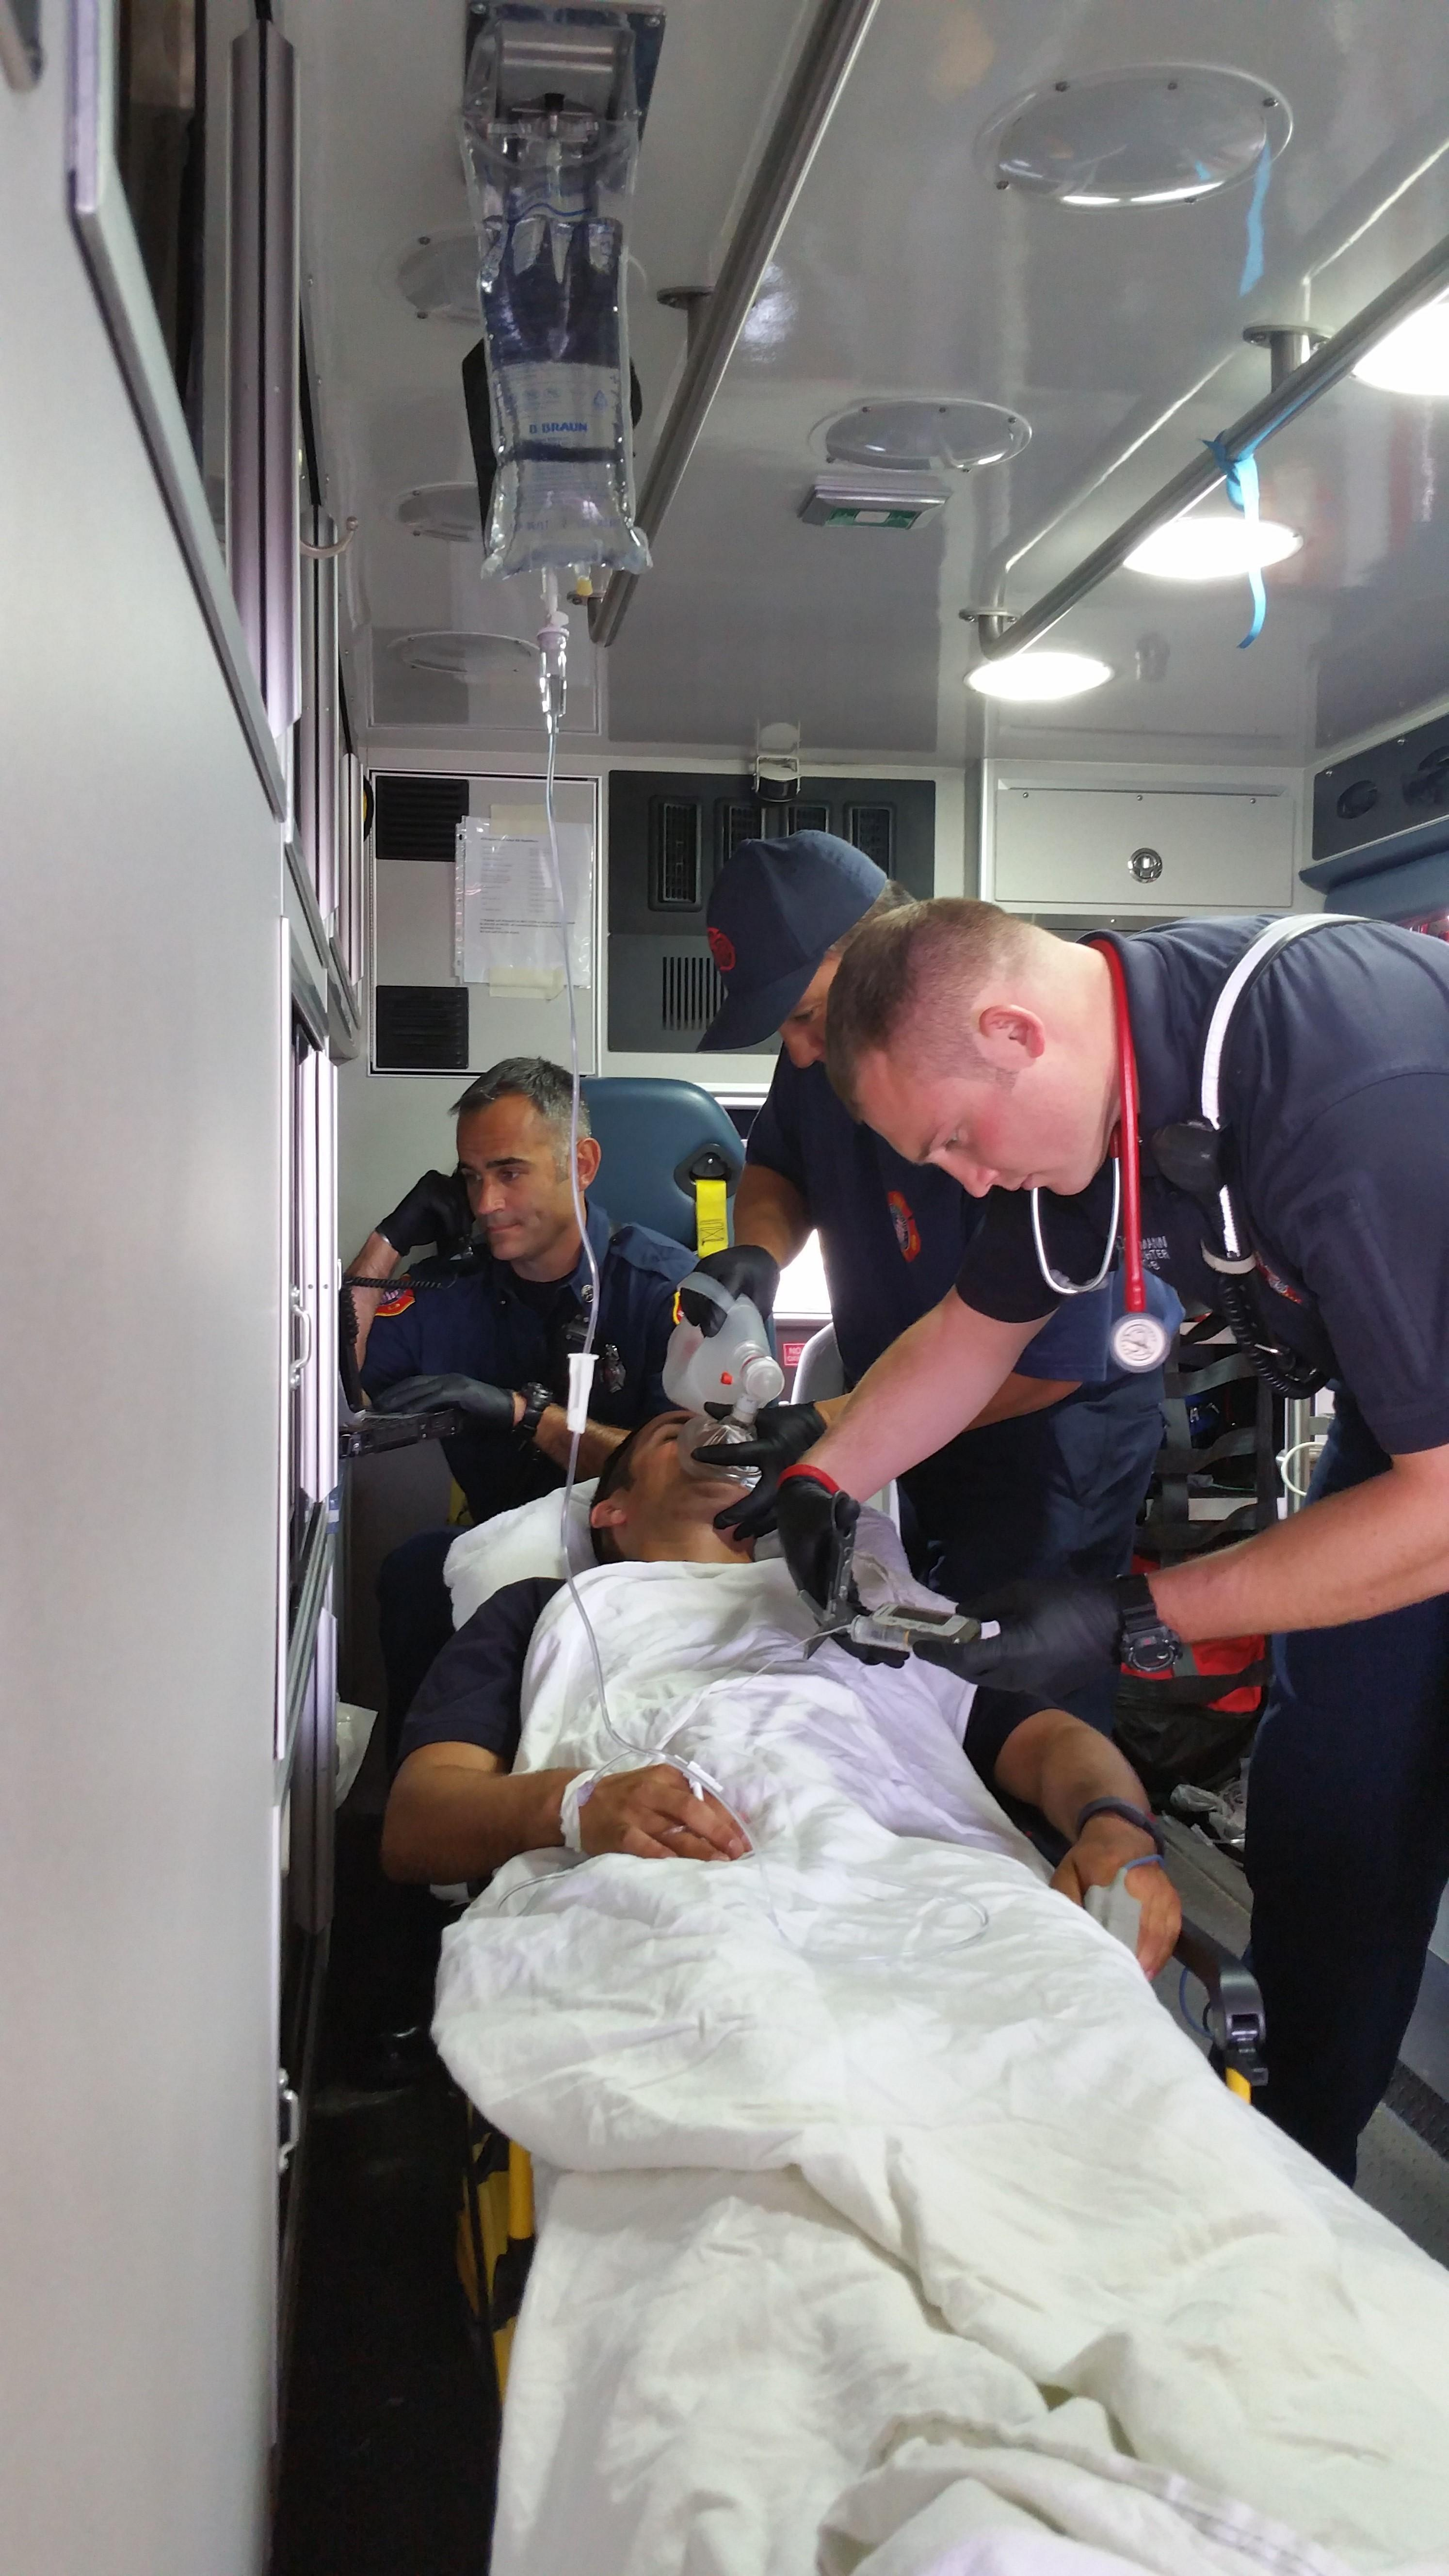 Ems Treatment Of The Type 1 Diabetic Insulin Pump User